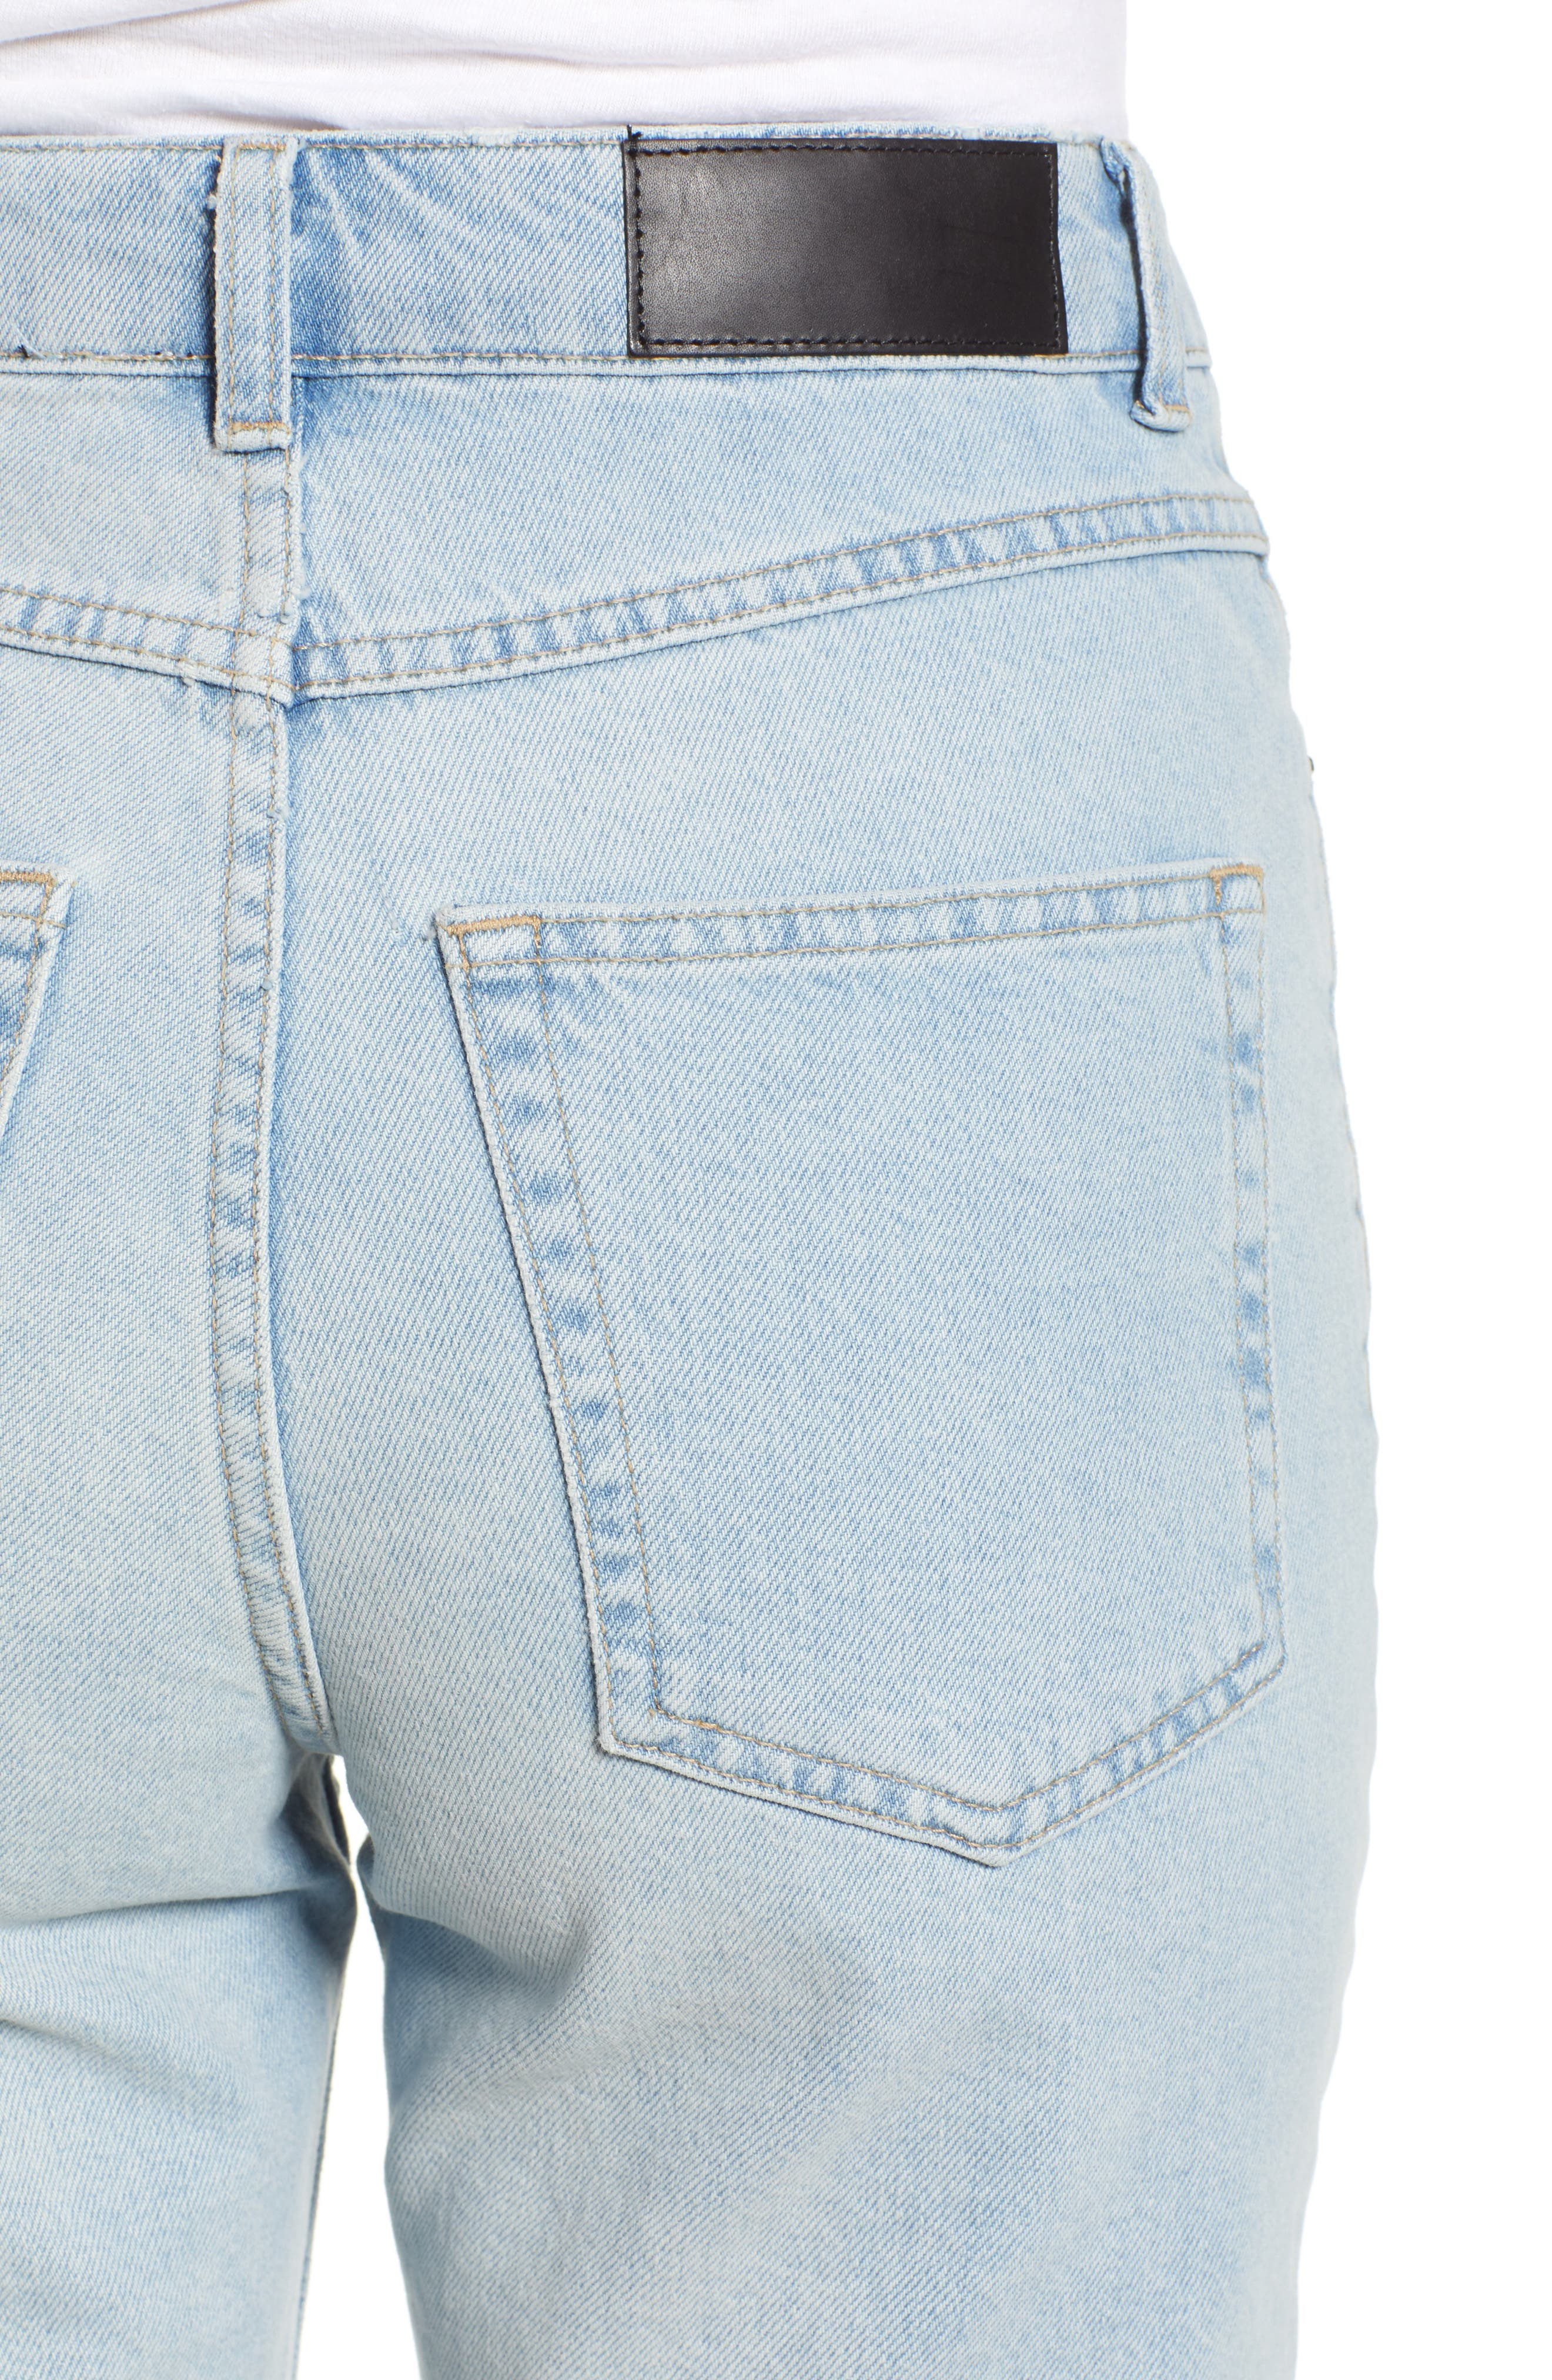 Alternate Image 4  - Topshop Boutique Bleach Denim Board Shorts